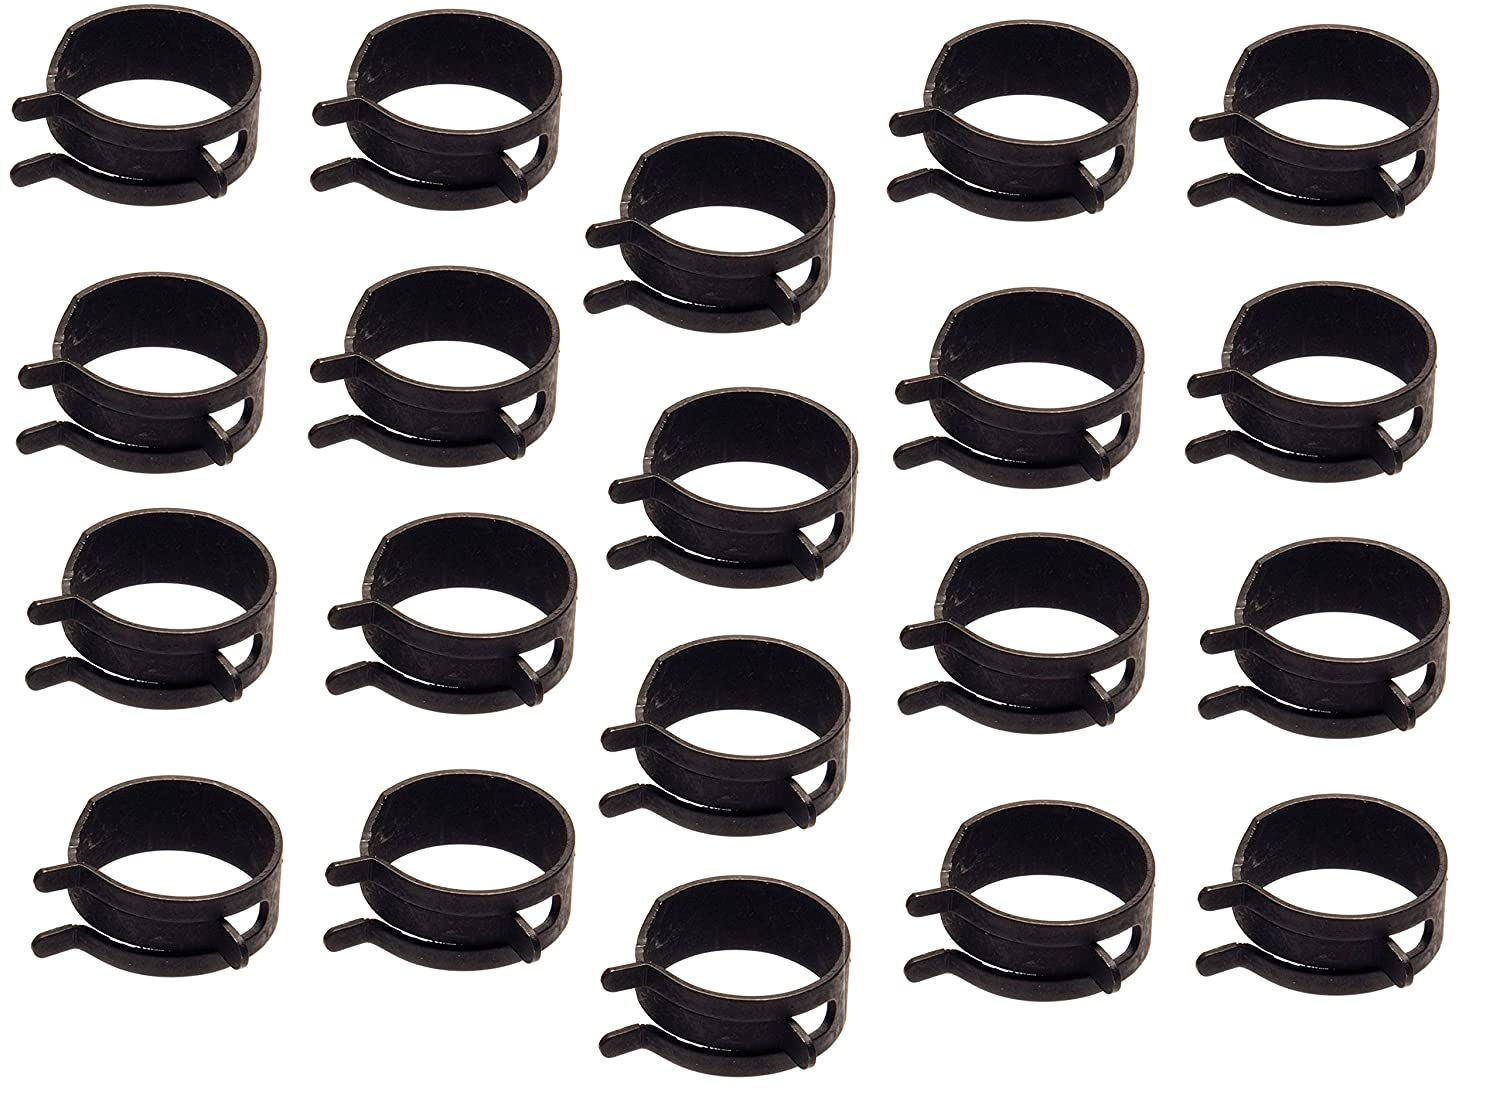 Inch Spring Action Hose Clamps Gray 20 Pack 5//8 O.D